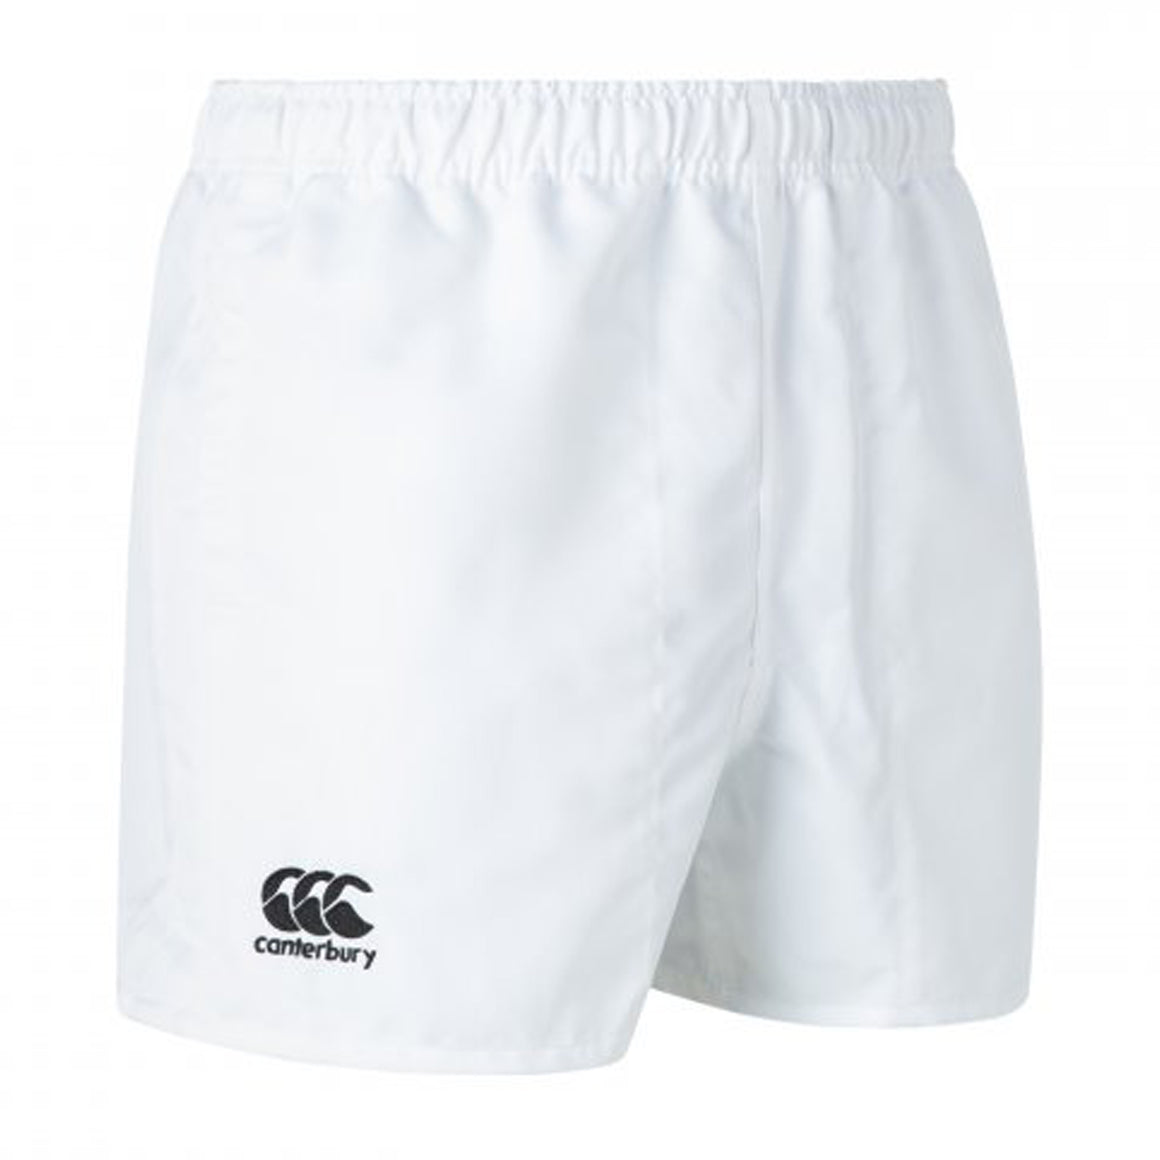 Professional Short Junior for Kids in White